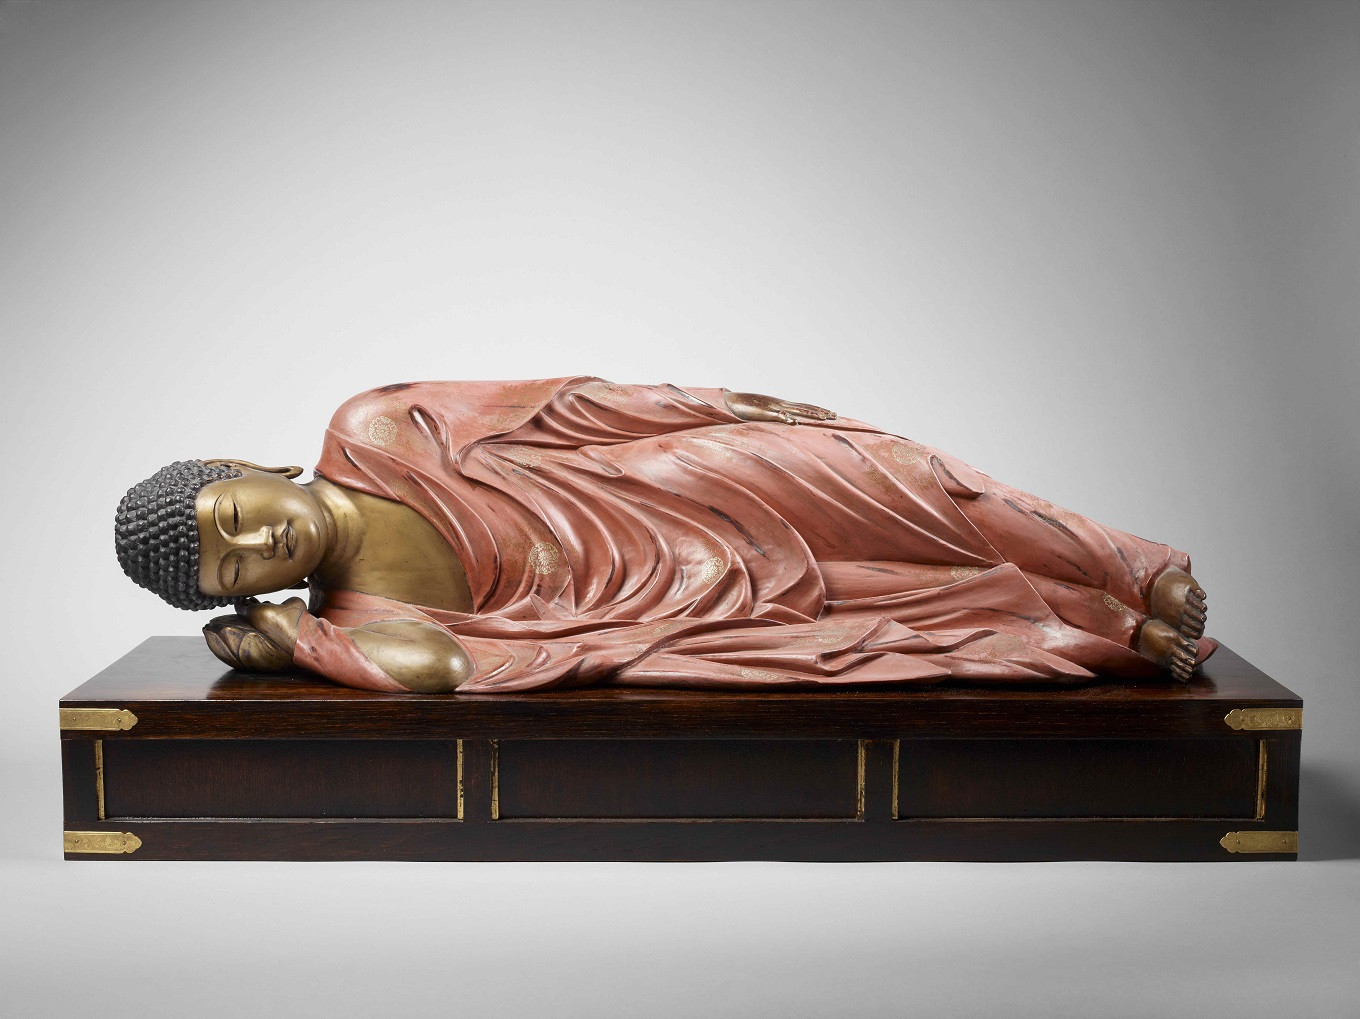 Reclining Buddha entering Nirvana (Nahan no shaka), Japan 19th century, lacquered and gilded wood, ancient reserve of Guimet Museum, 80 cm long.